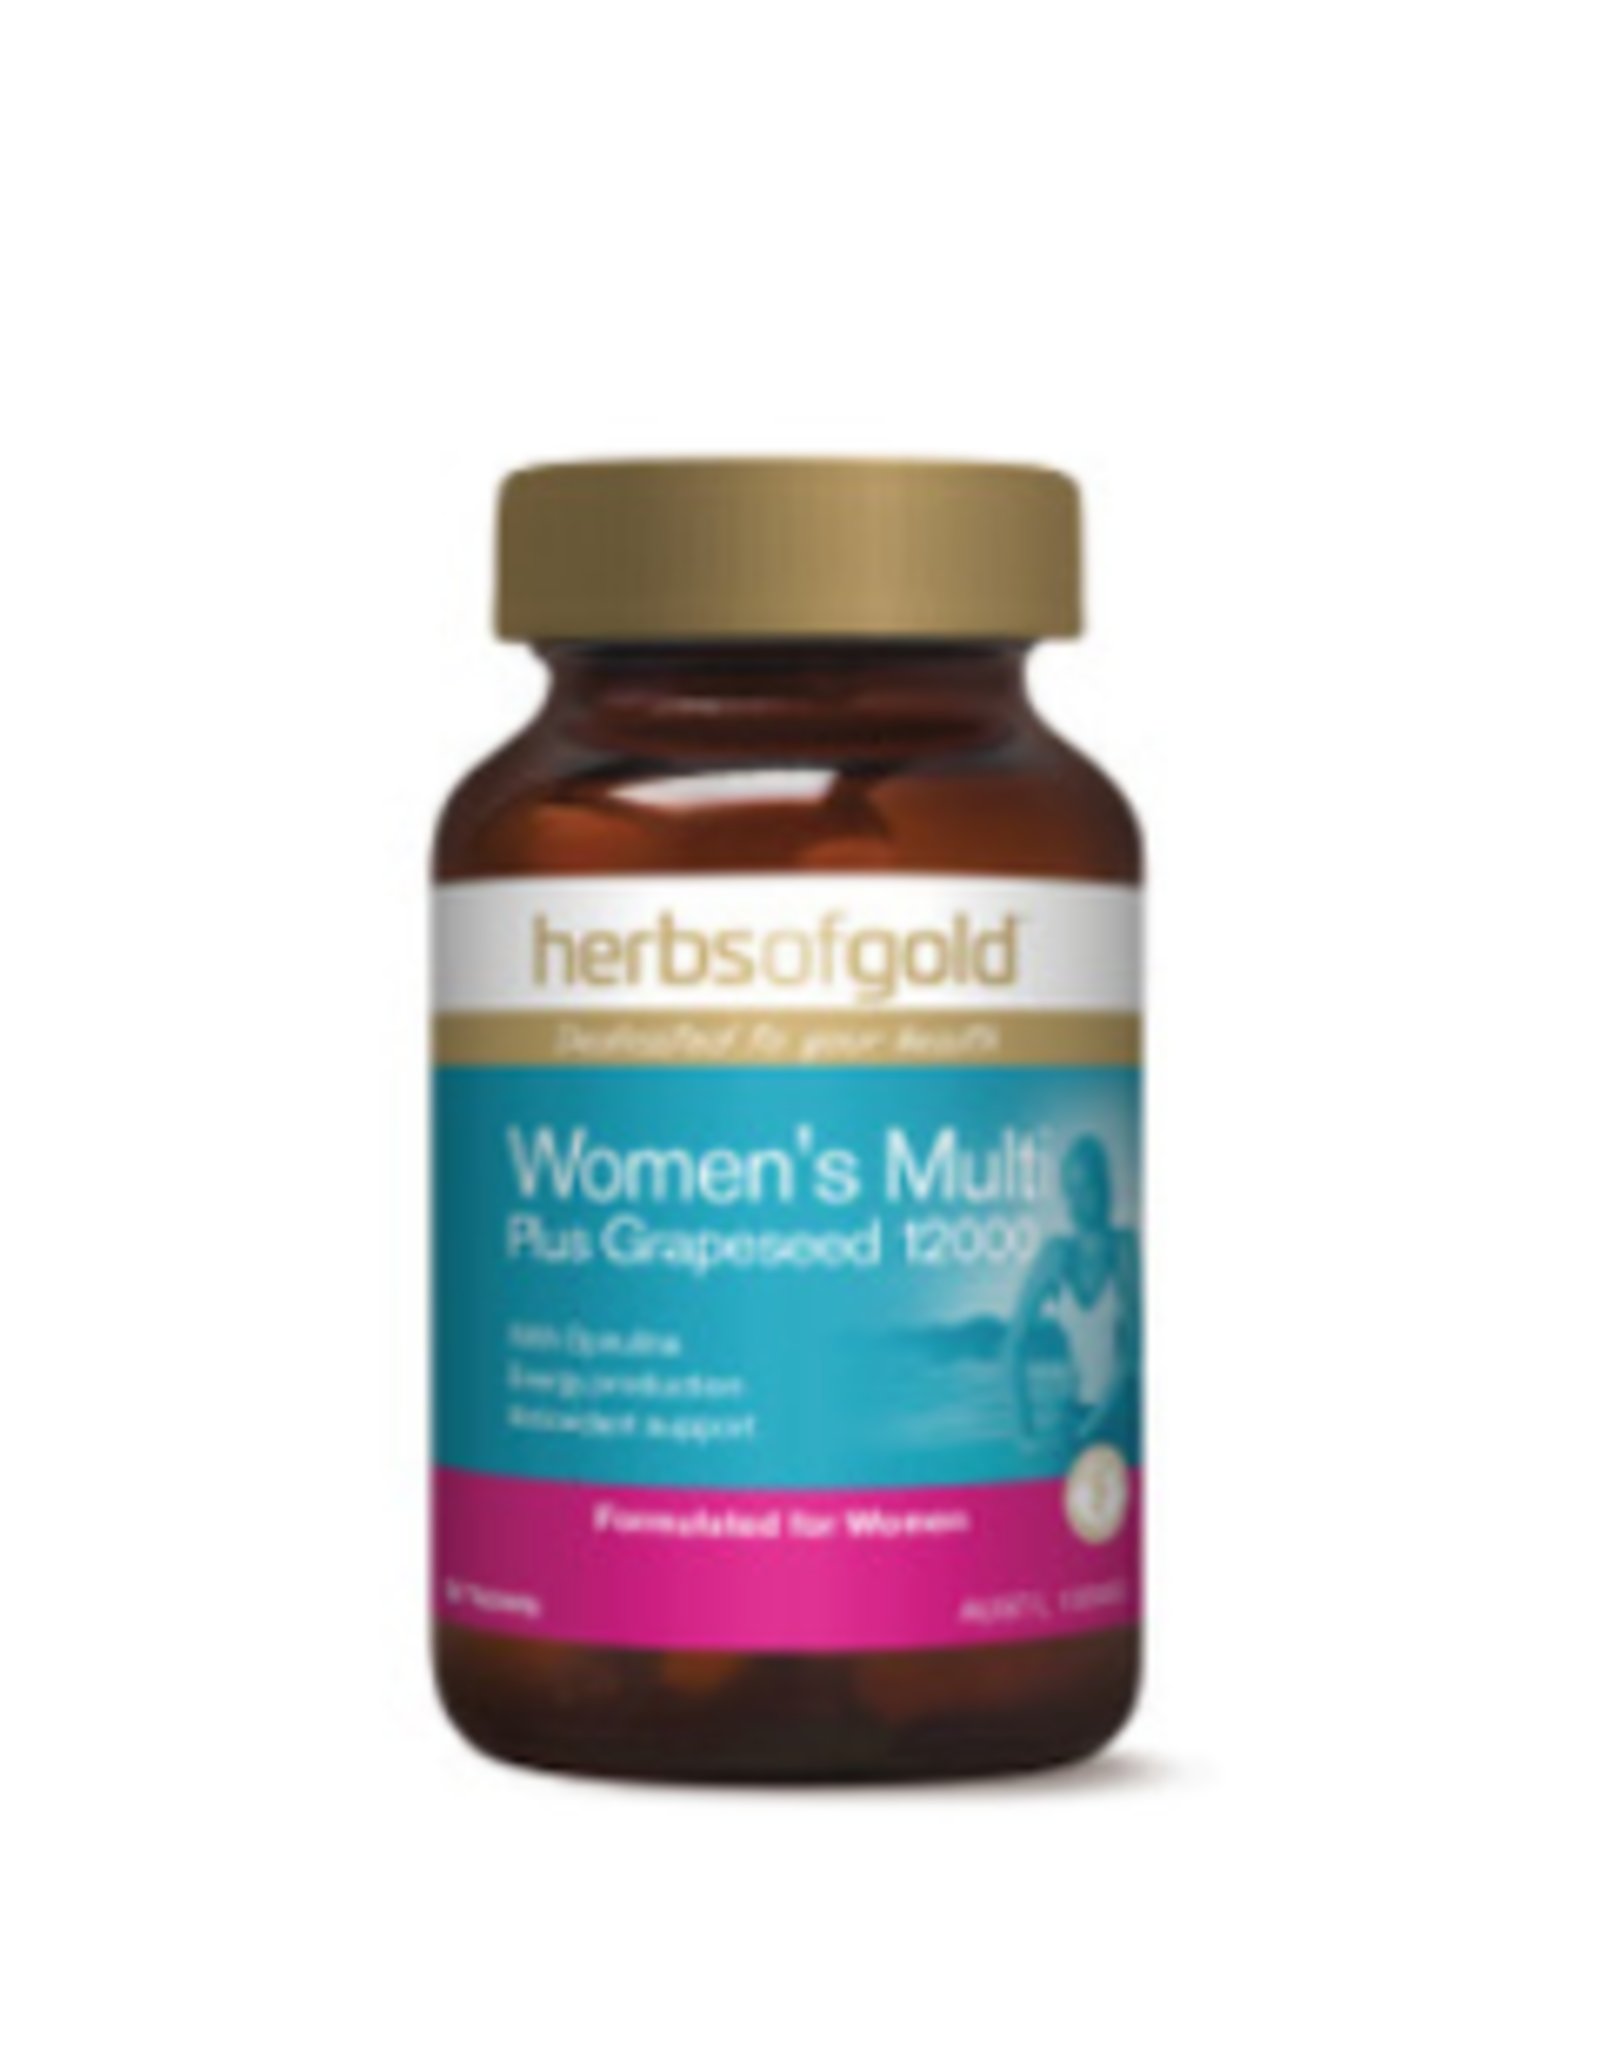 Herbs of Gold Women's Multi Plus Grapeseed 12000 30t